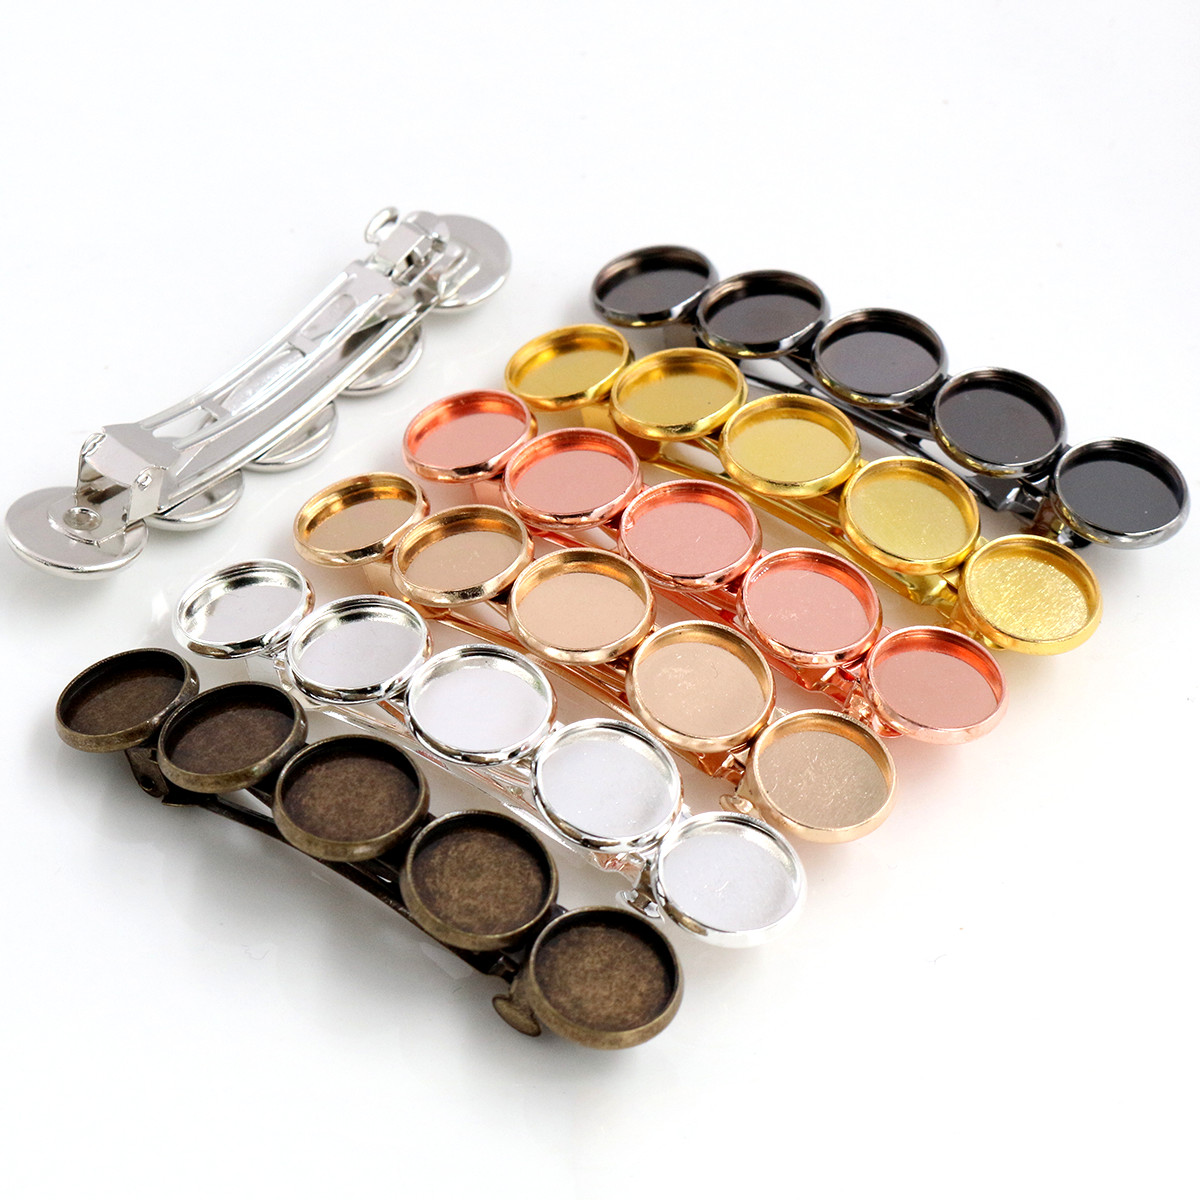 5pcs 12mm With 5 Cameo High Quality 7 Colors Plated Copper Material Hairpin Hair Clips Hairpin Base Setting DIY Hair Accessories